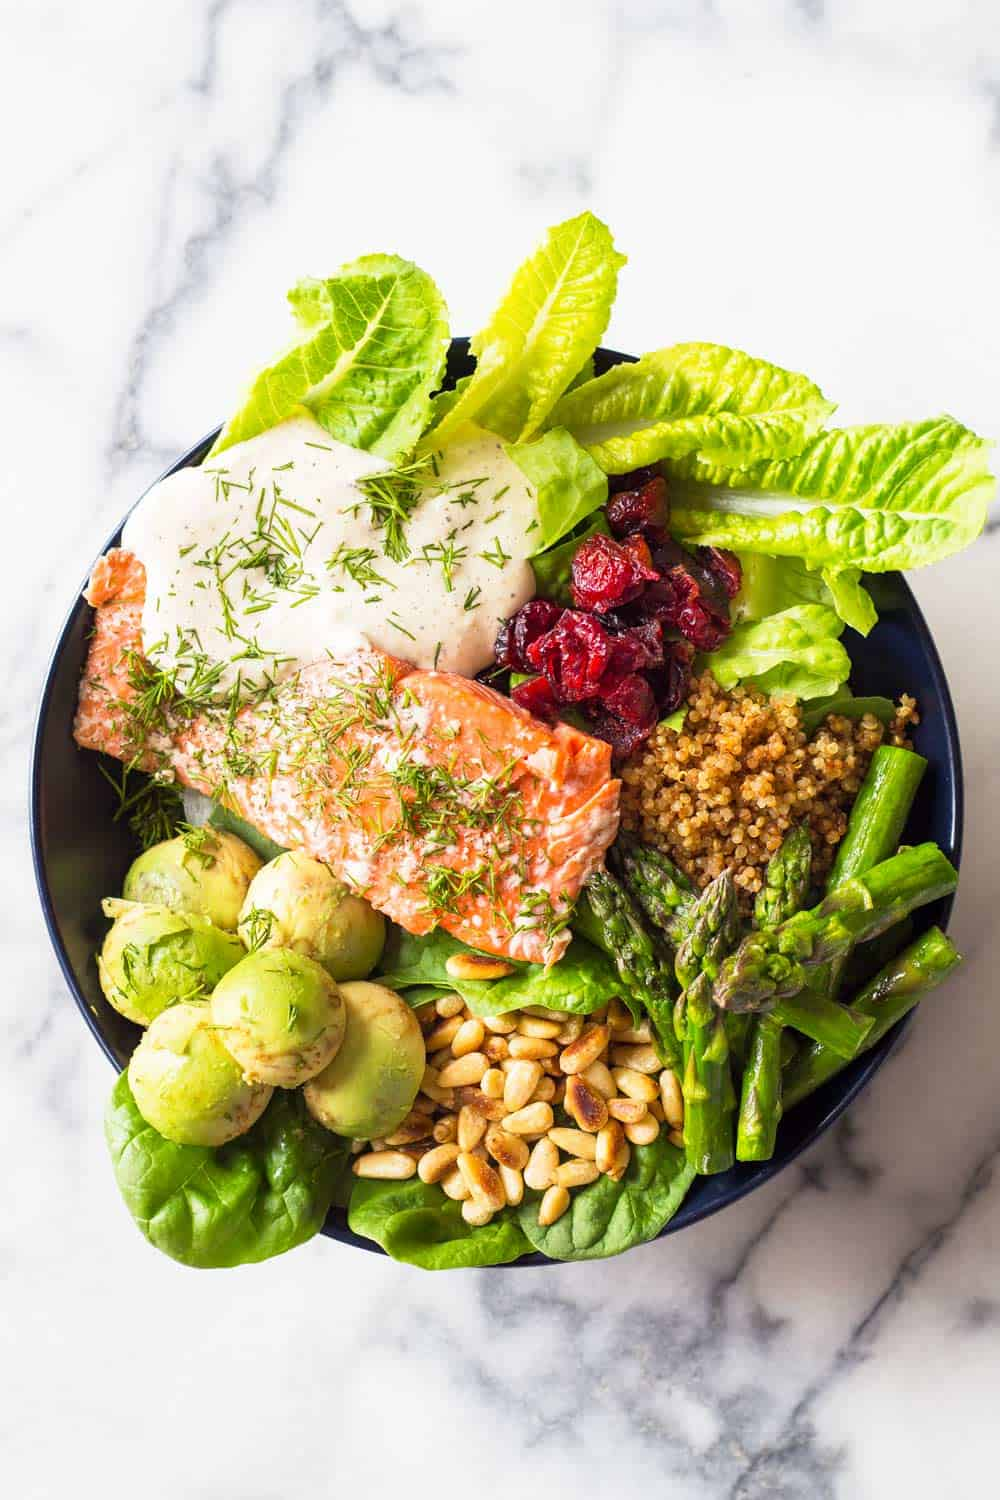 Sockeye Salmon is hands down the best fish in the whole wide world. Pair it with lettuce, asparagus, pine nuts, cranberries and avocado, drizzle the best salad dressing ever on it and you've just made yourself the best Sockeye Salmon recipe ever!